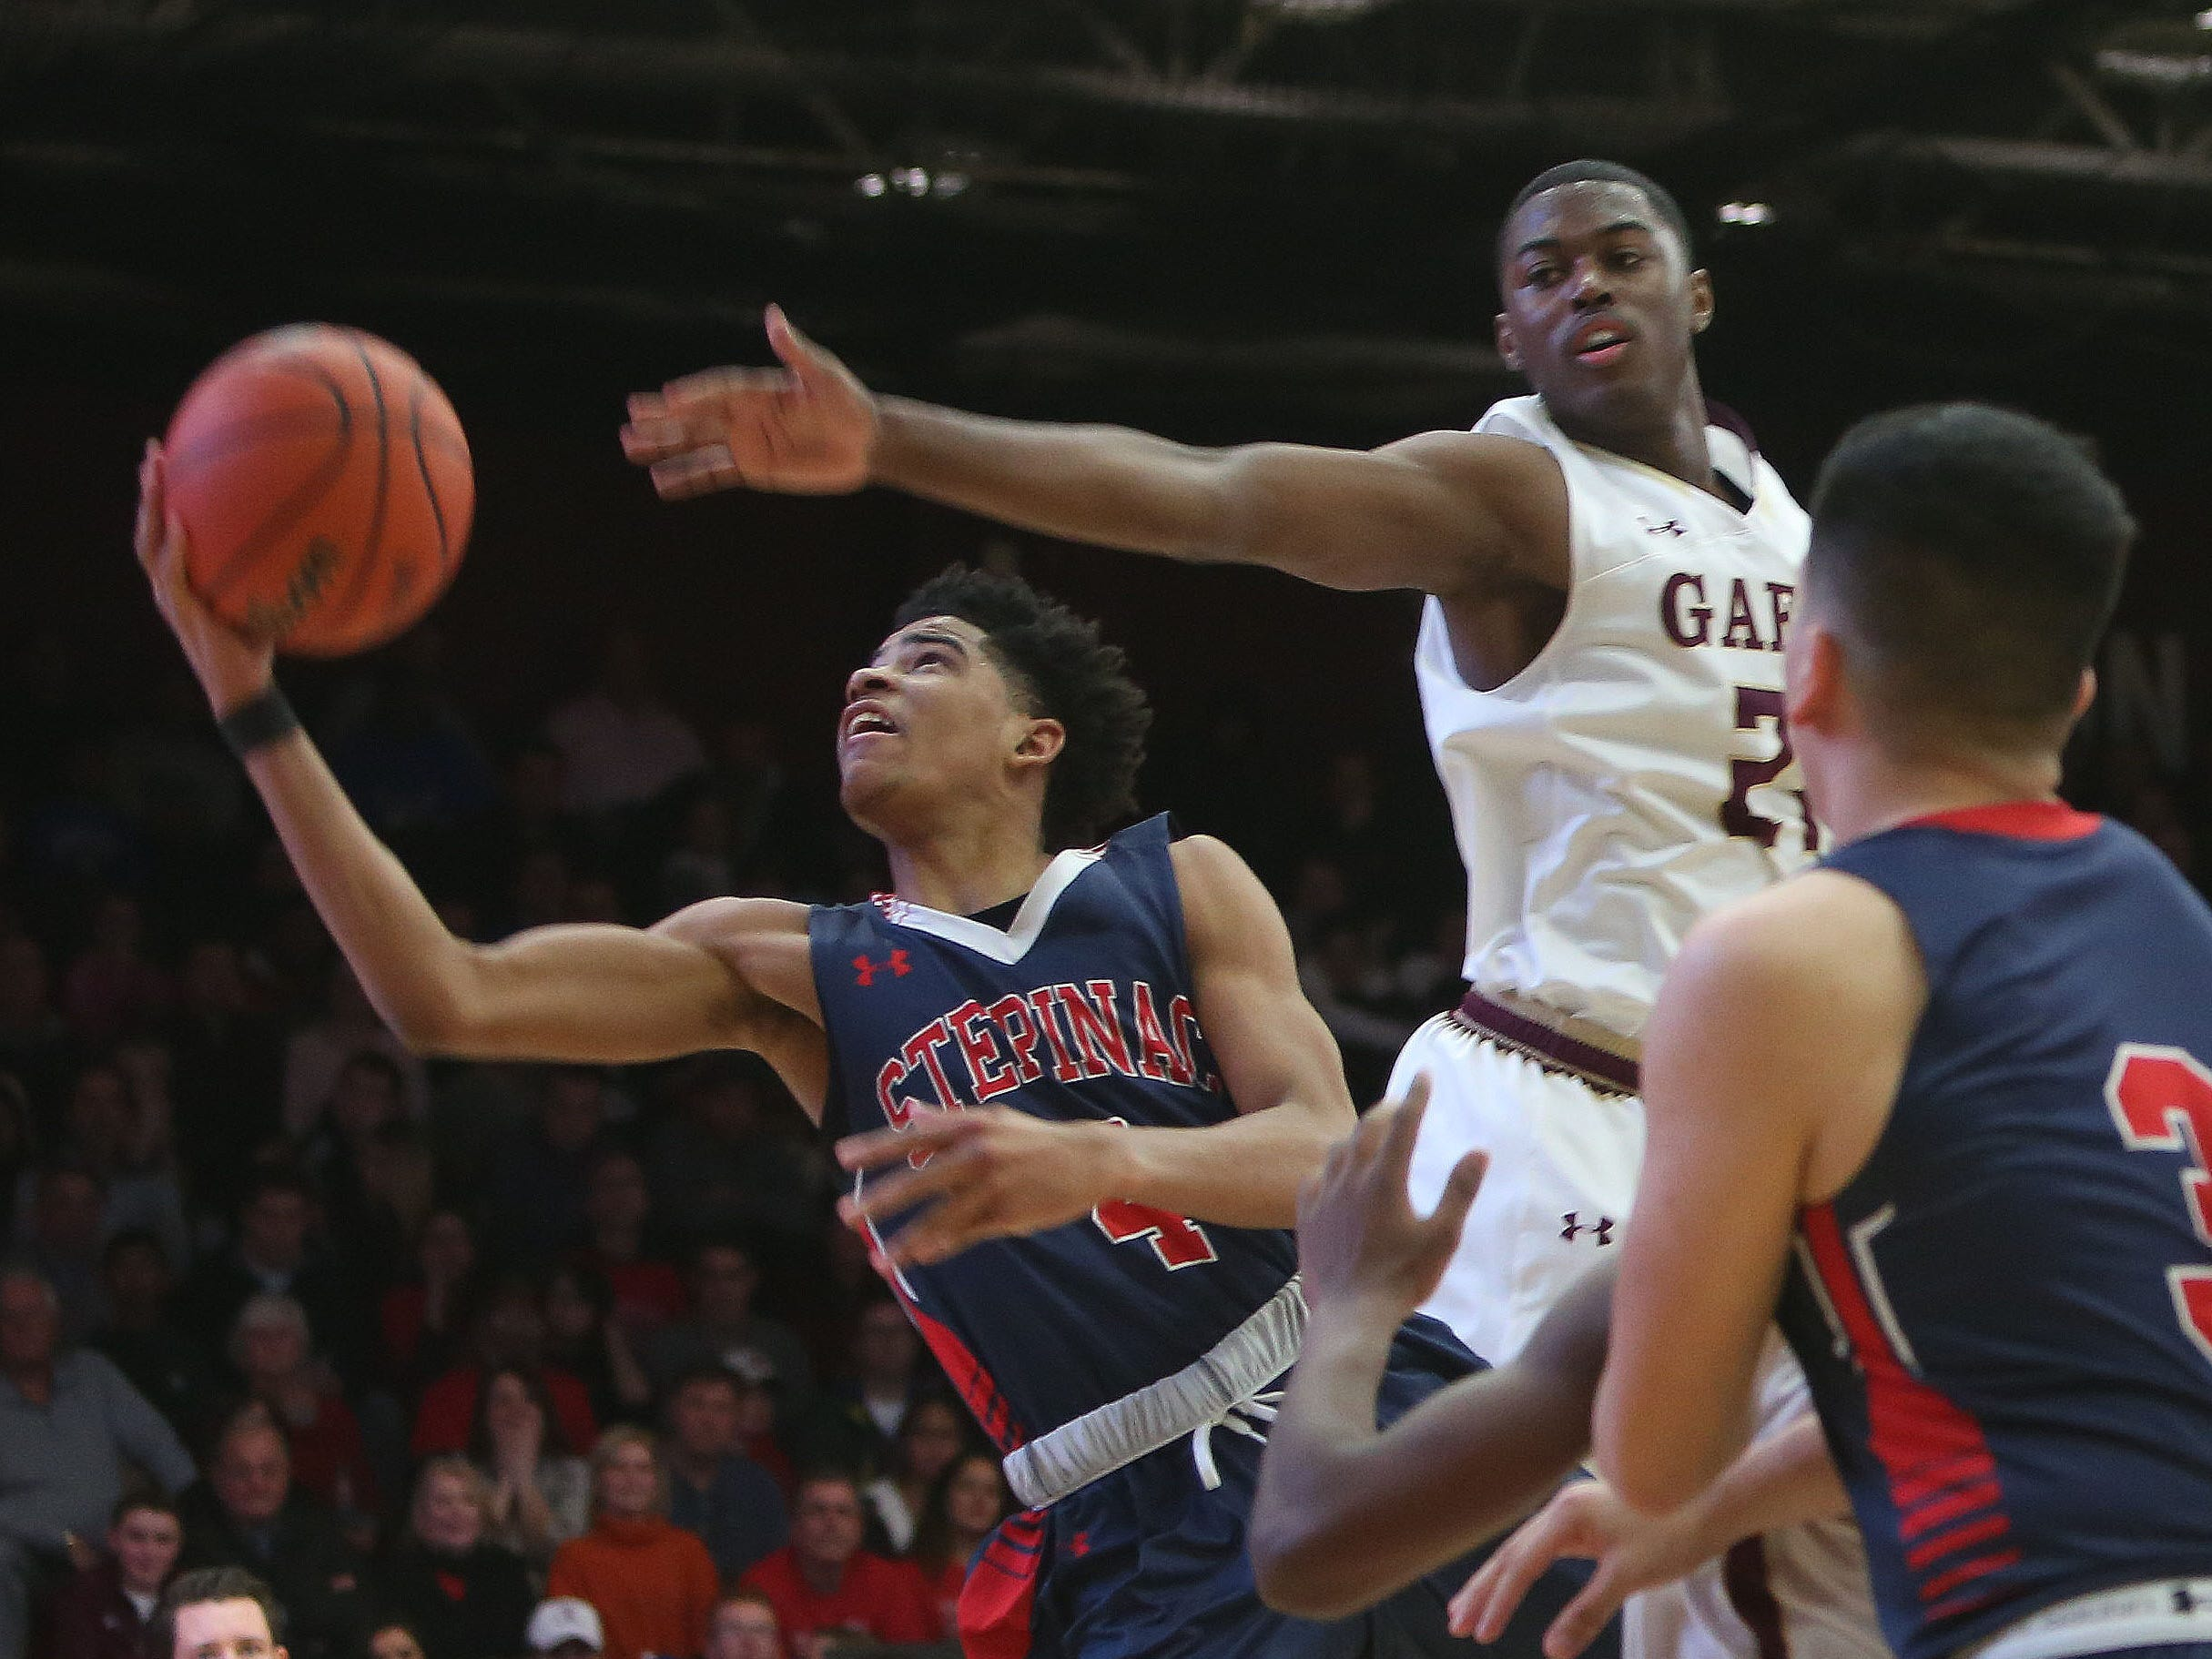 Stepinac's R.J. Davis (4) drives to the basket in front of Iona's Josh Alexander (21) during boys basketball action at Iona College in New Rochelle Feb. 3, 2018. Iona won the game 75-67.